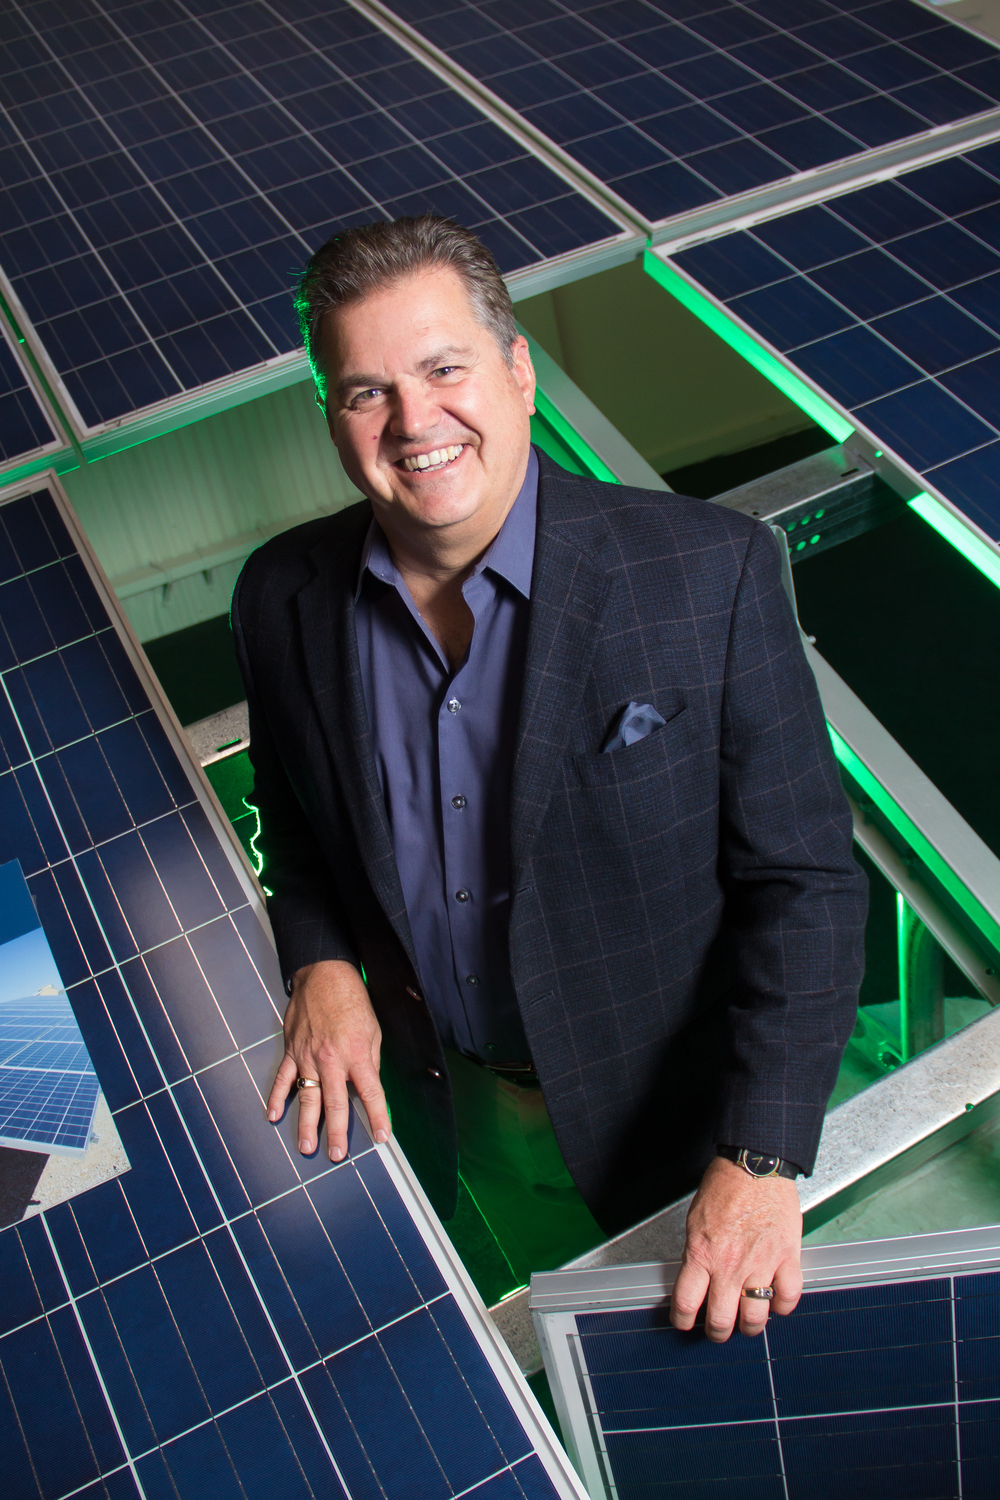 SunLink's Michael Maulick, new SEIA vice chair. Source: EQ